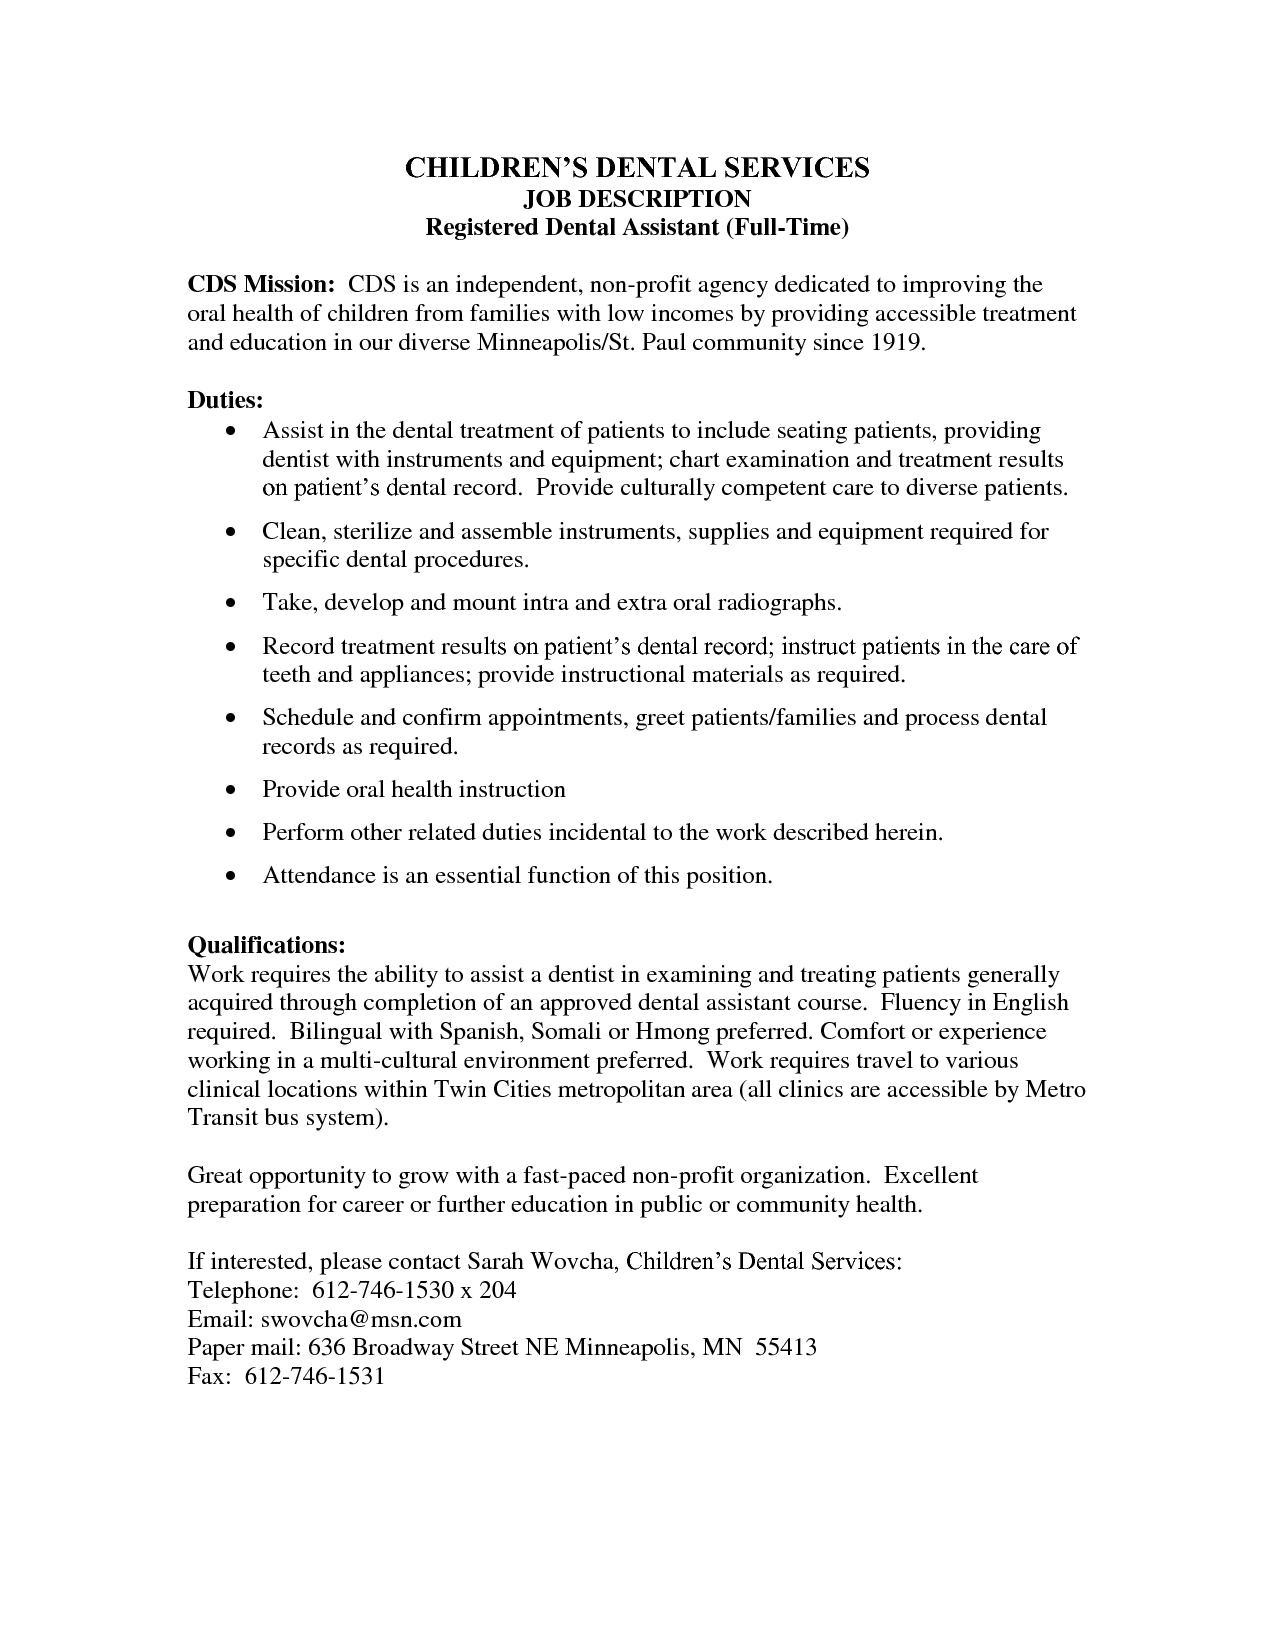 dental assistant skills and qualifications registered dental assistant job description - Dental Assistant Job Description For Resume